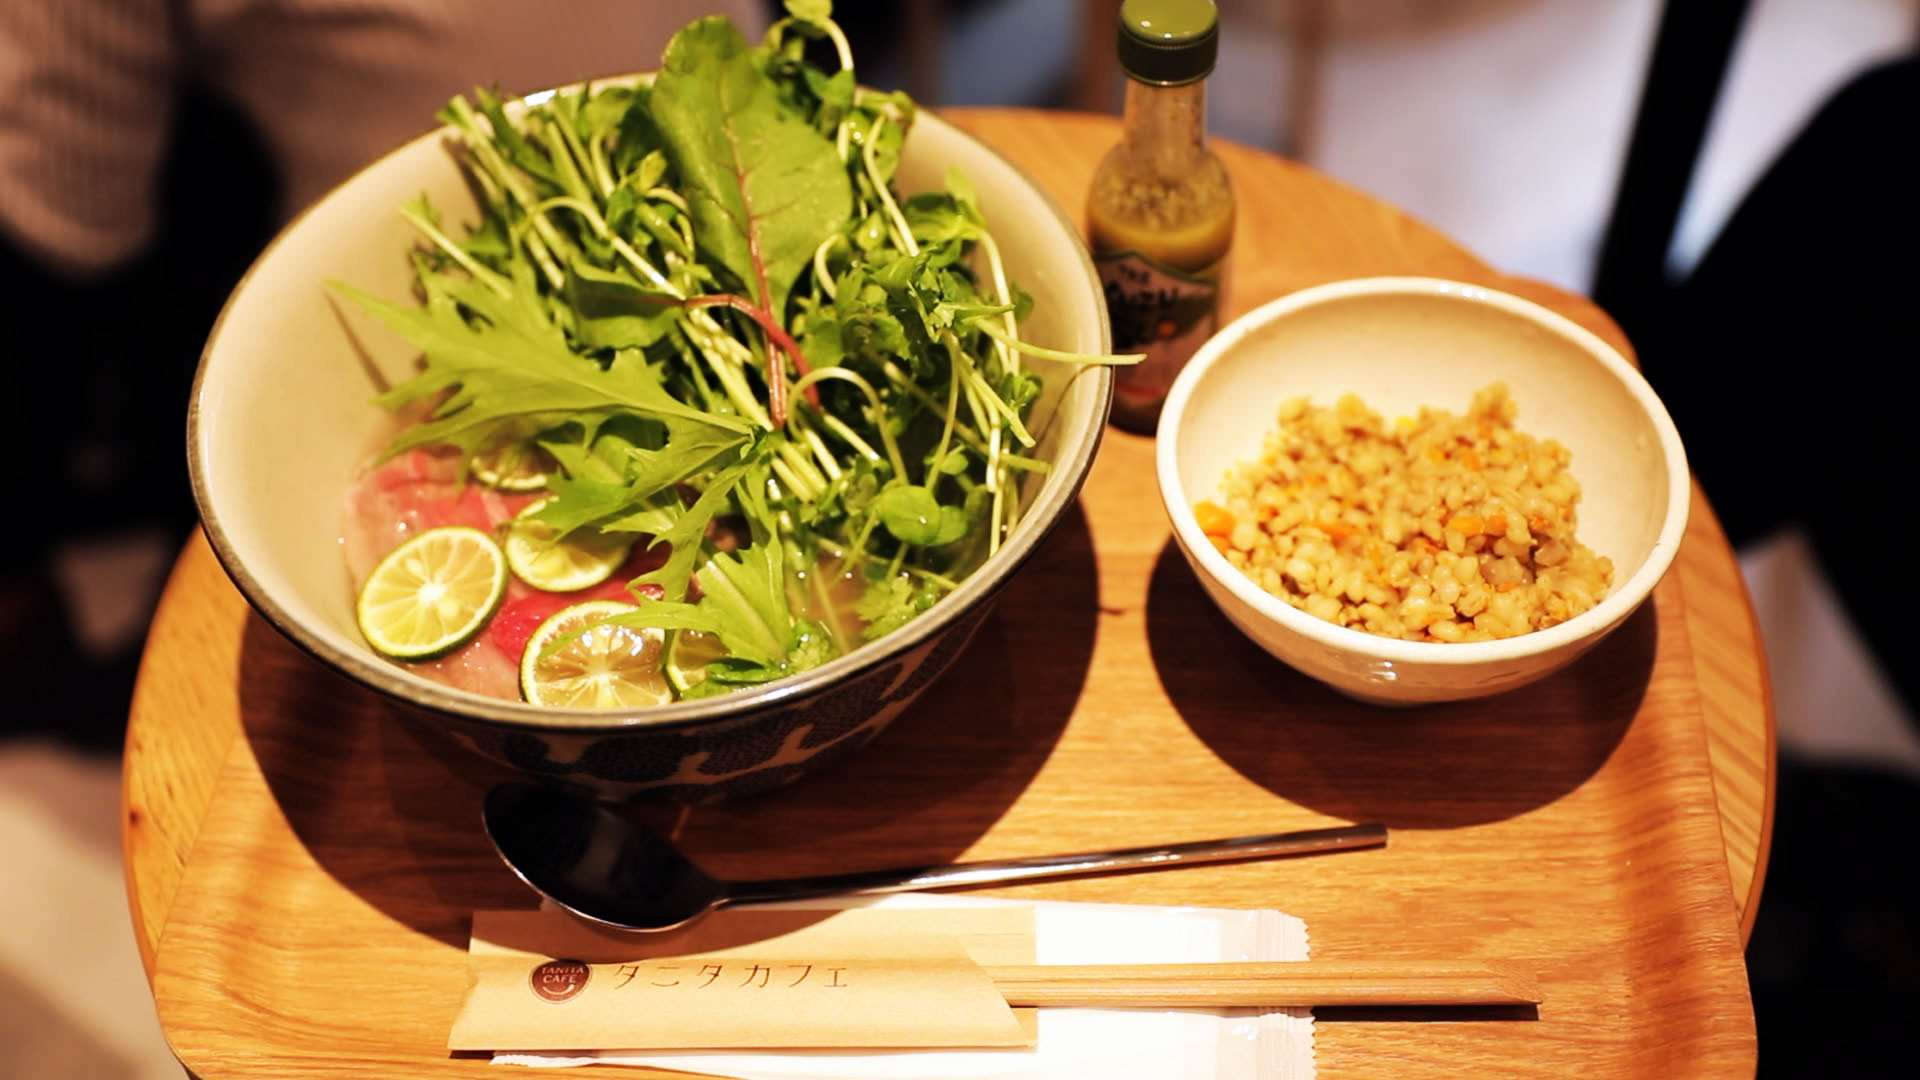 Rakuten Ragri's Vegetables Enrich Dishes at TANITA CAFÉ